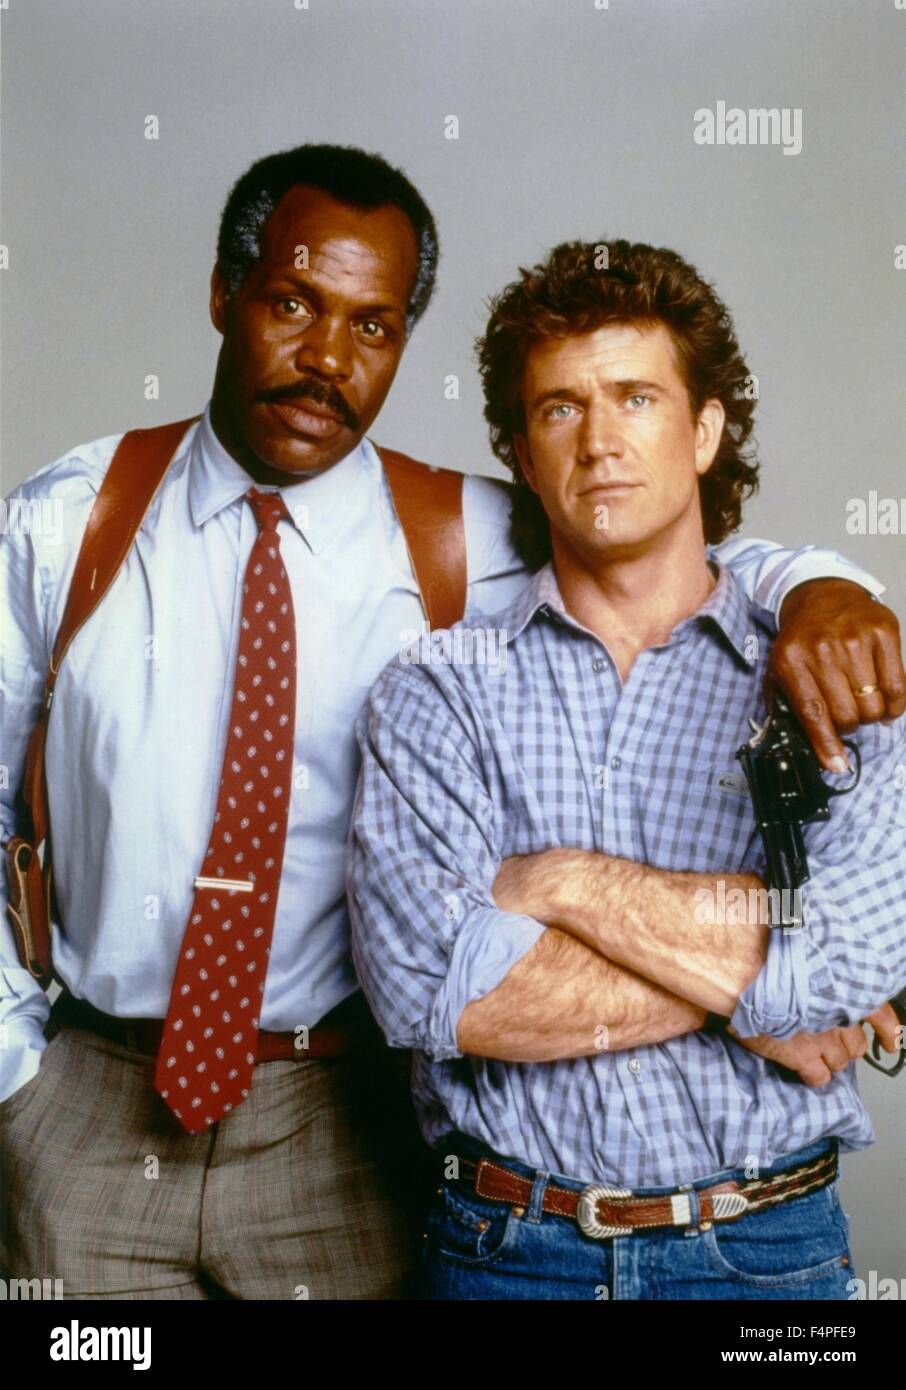 Danny Glover and Mel Gibson / Lethal Weapon / 1987 directed by Richard Donner - Stock Image